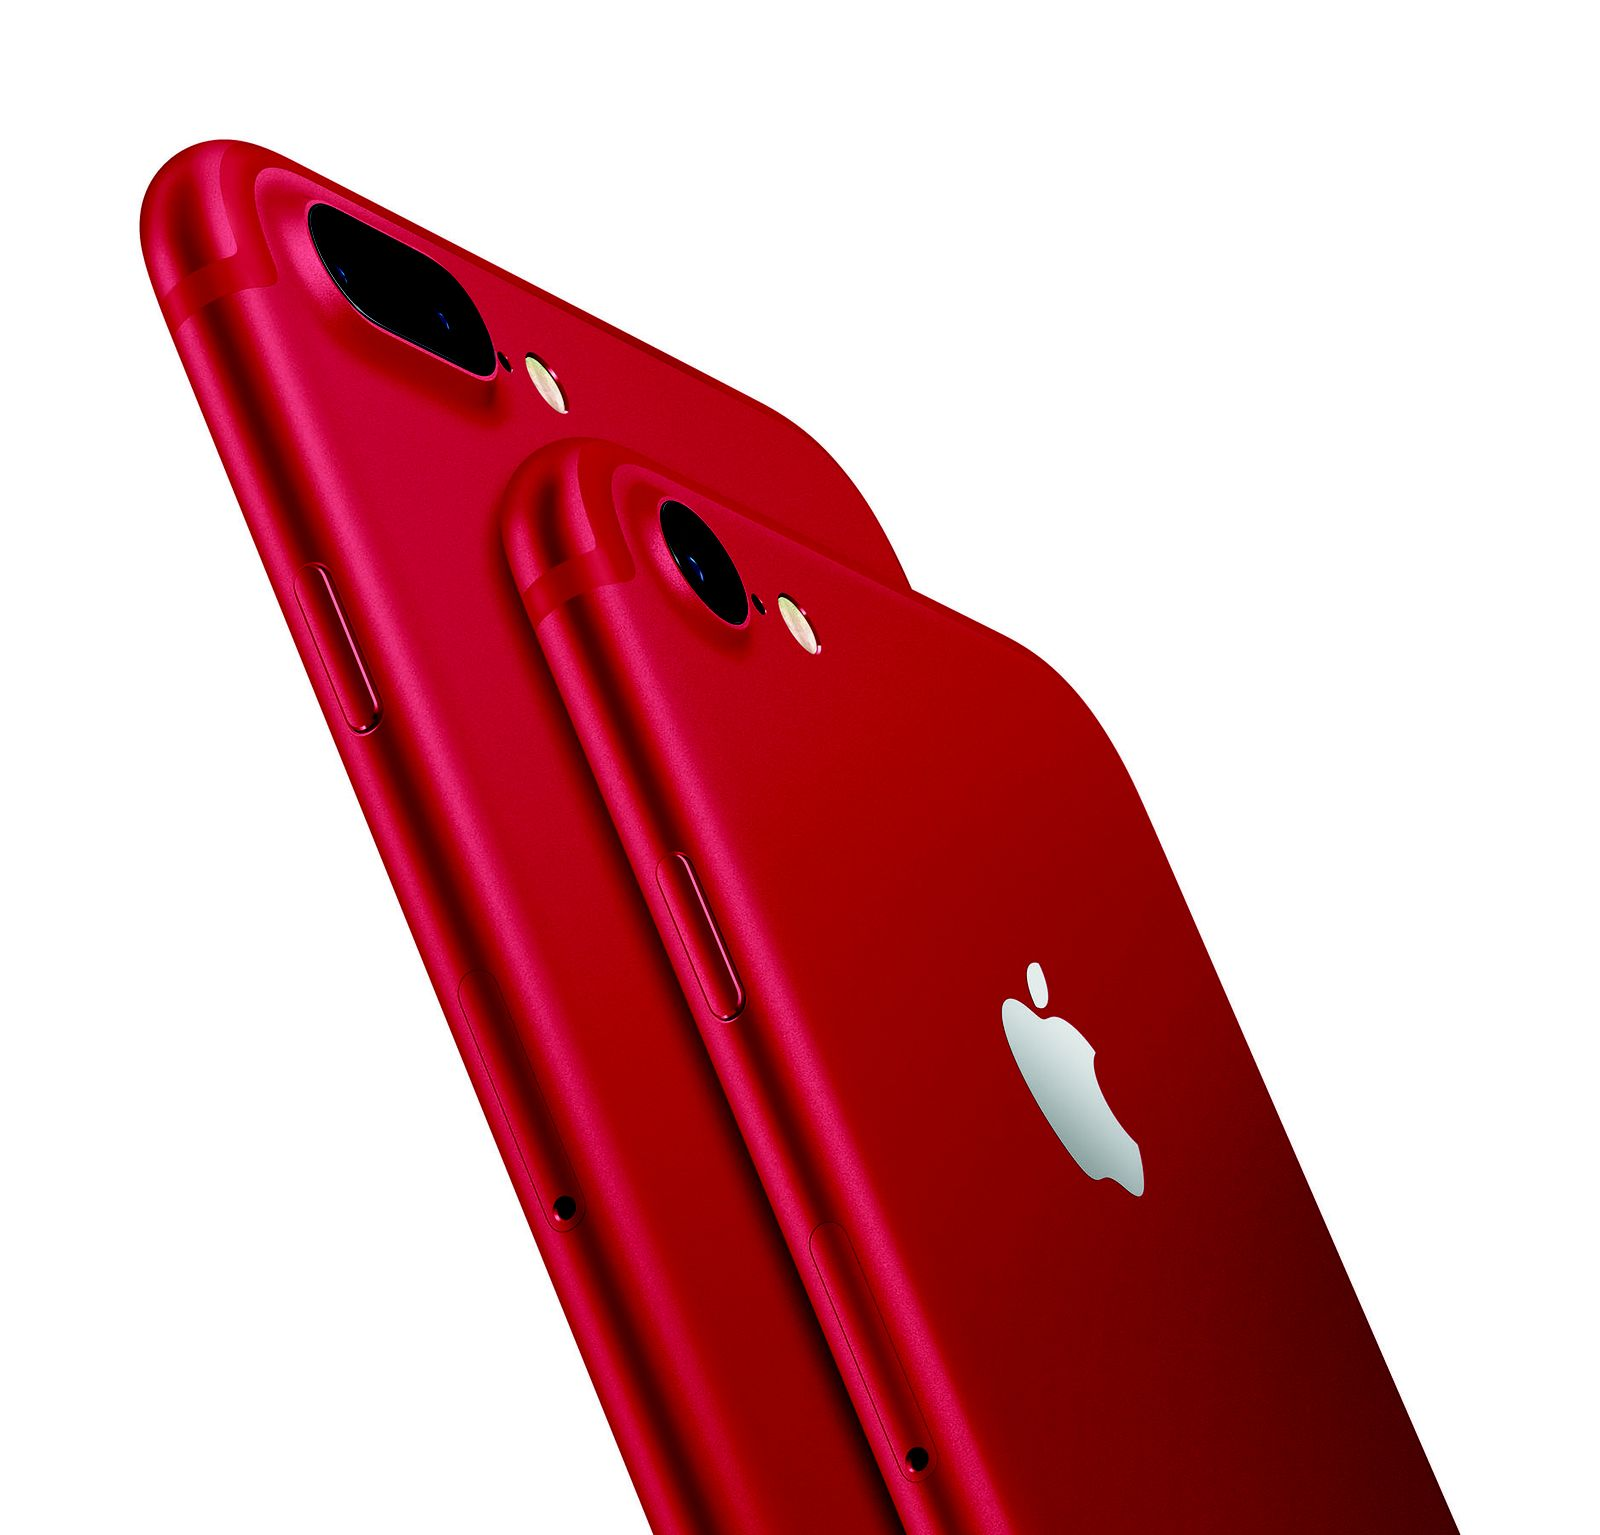 iphone_7_and_iphone_7_plus_product_red_hero_lockup_2_up_on_white_pr_print